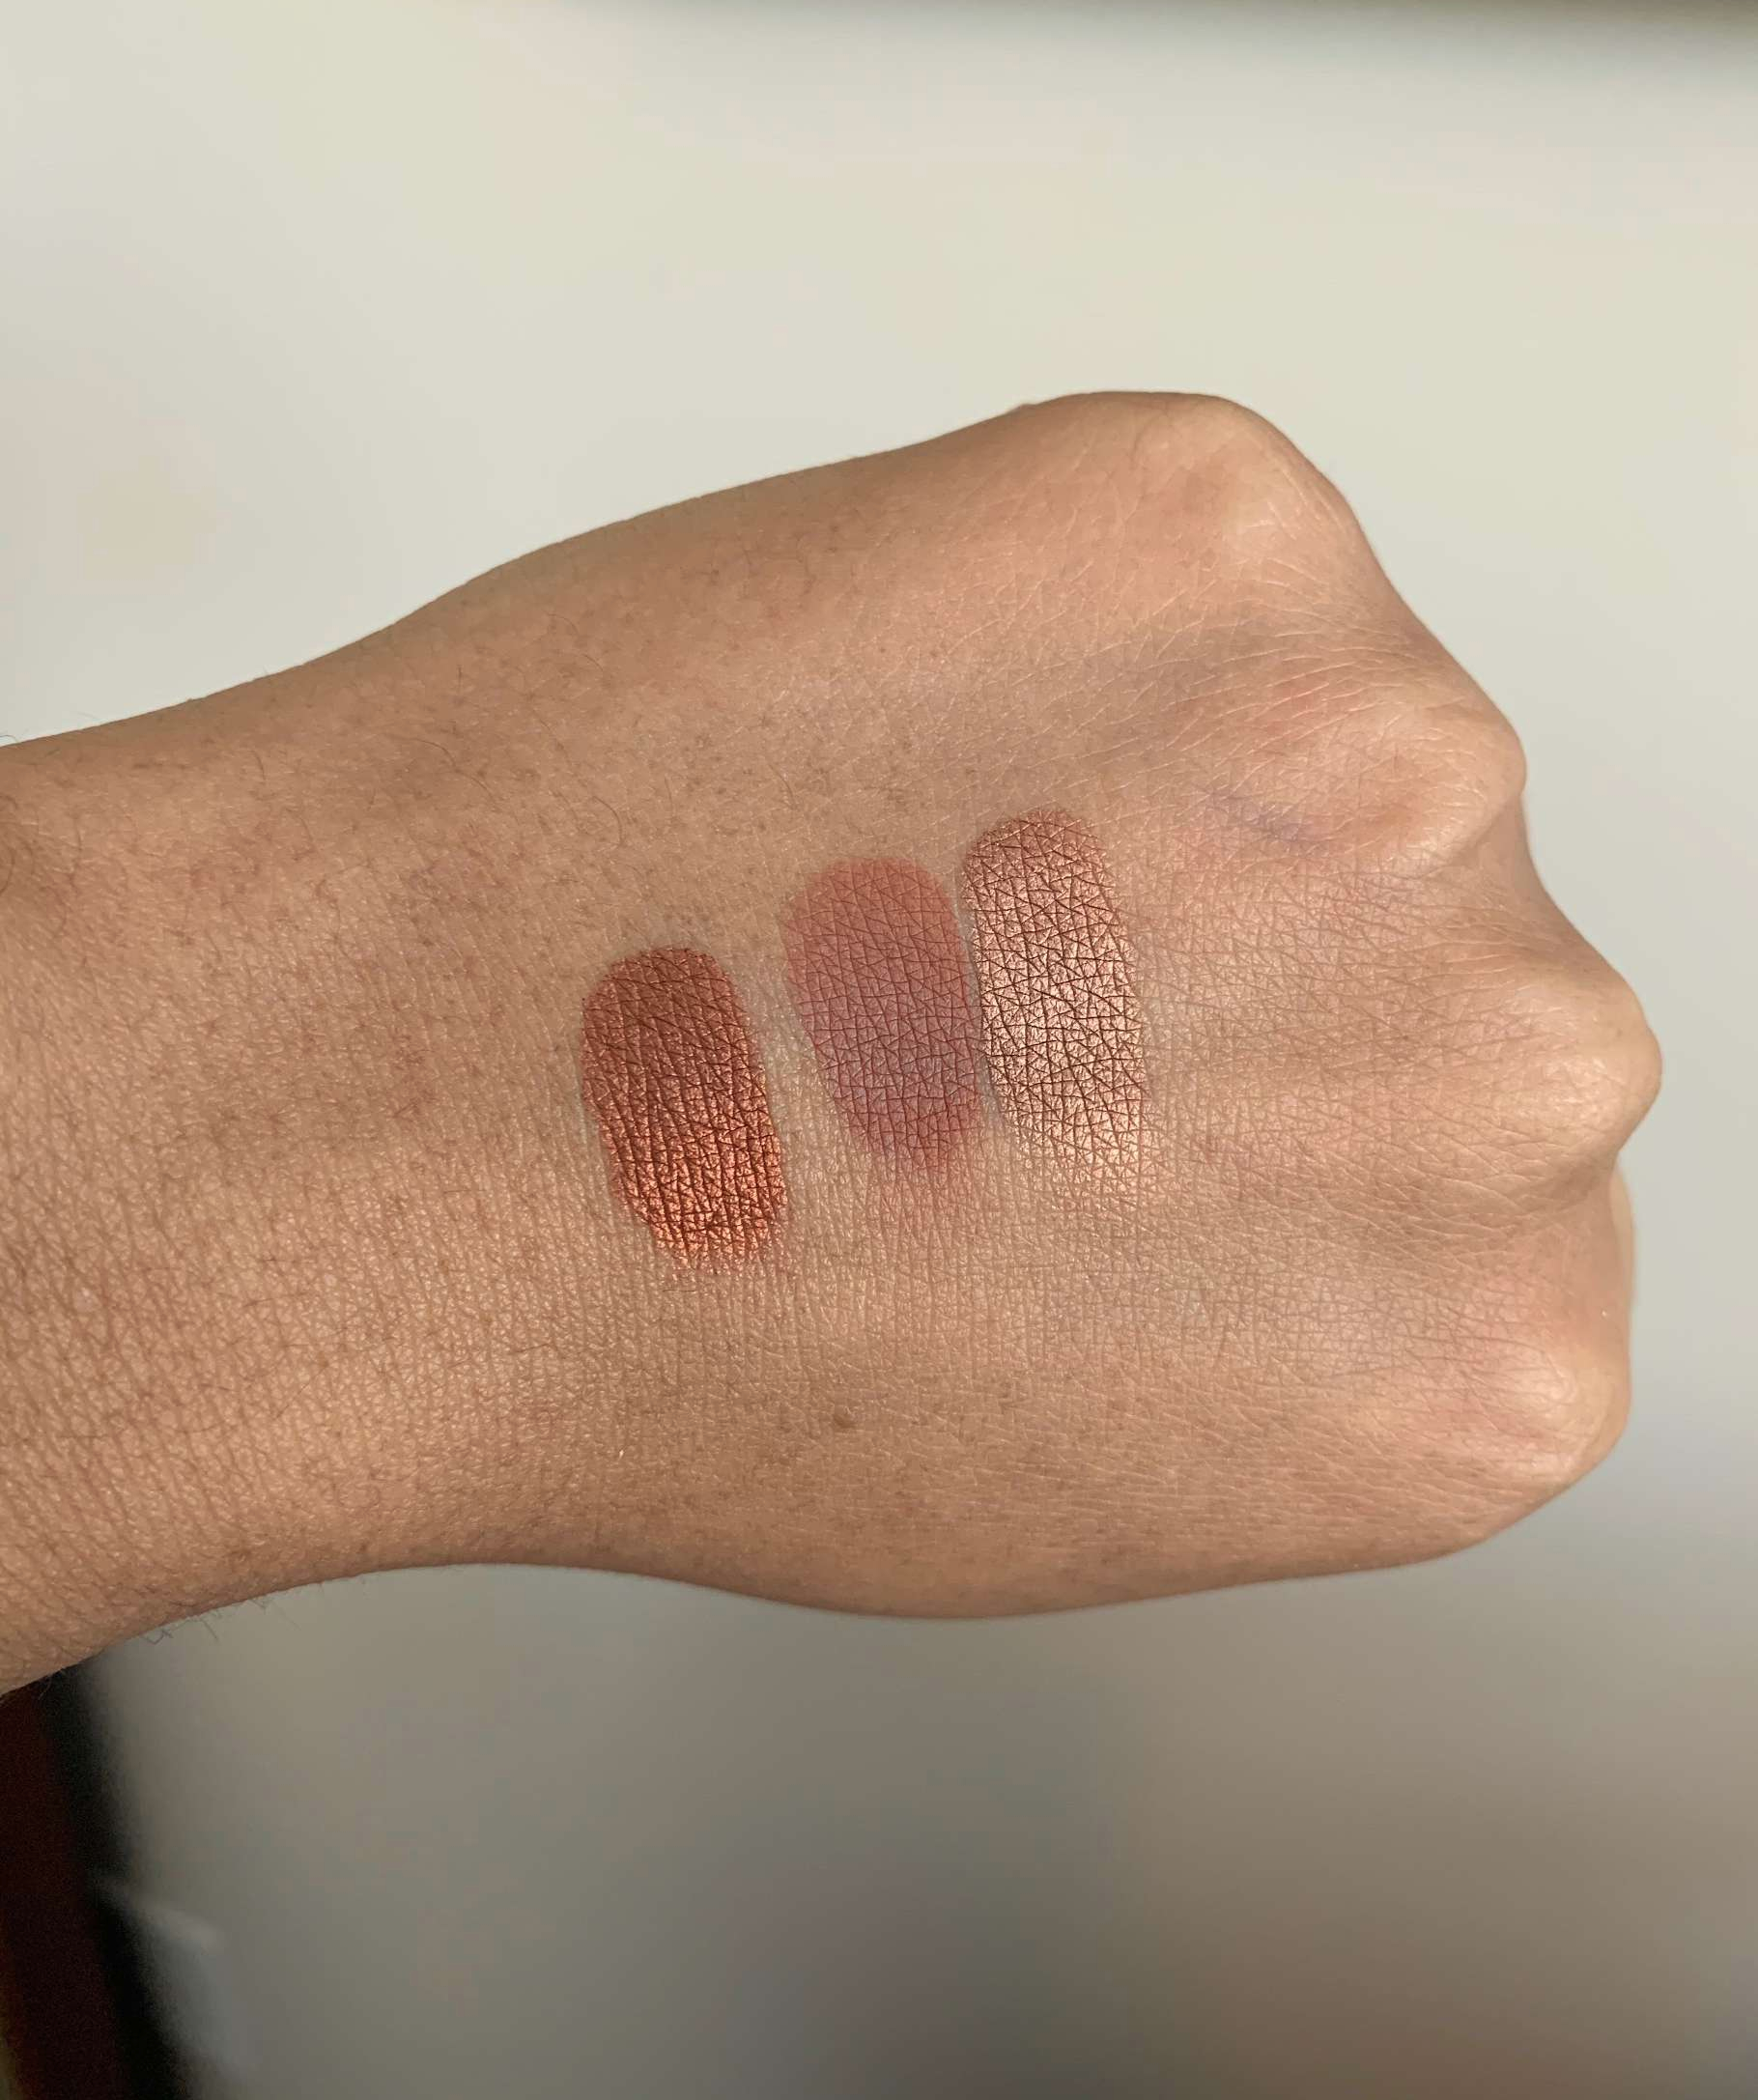 NARS single eyeshadow swatches (Guayaquil, Noumea, and Fez) on dark skin